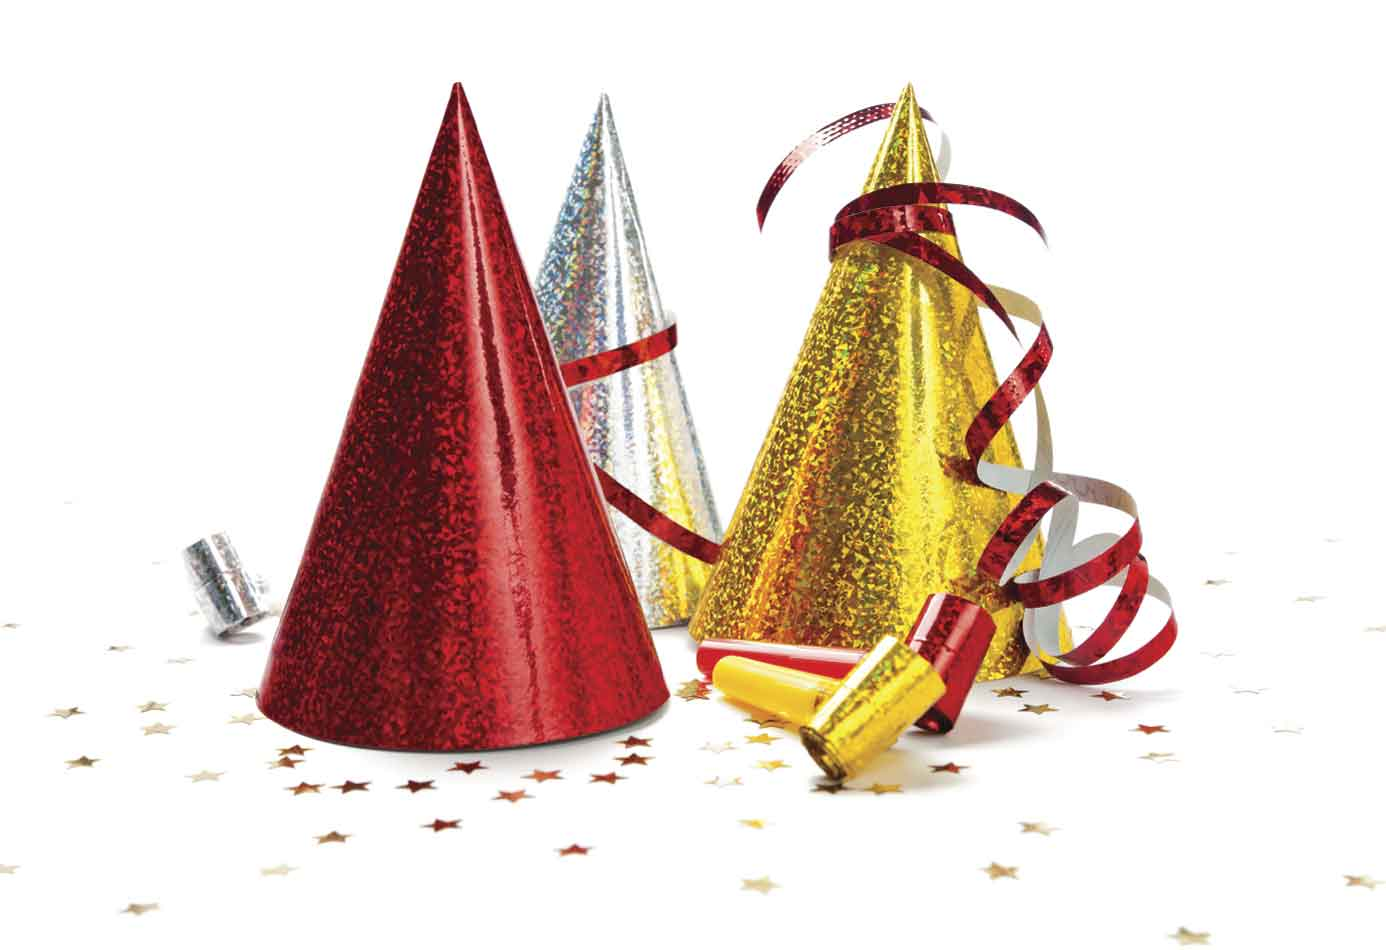 ICAEW shares tips for arranging a tax-efficient seasonal party image